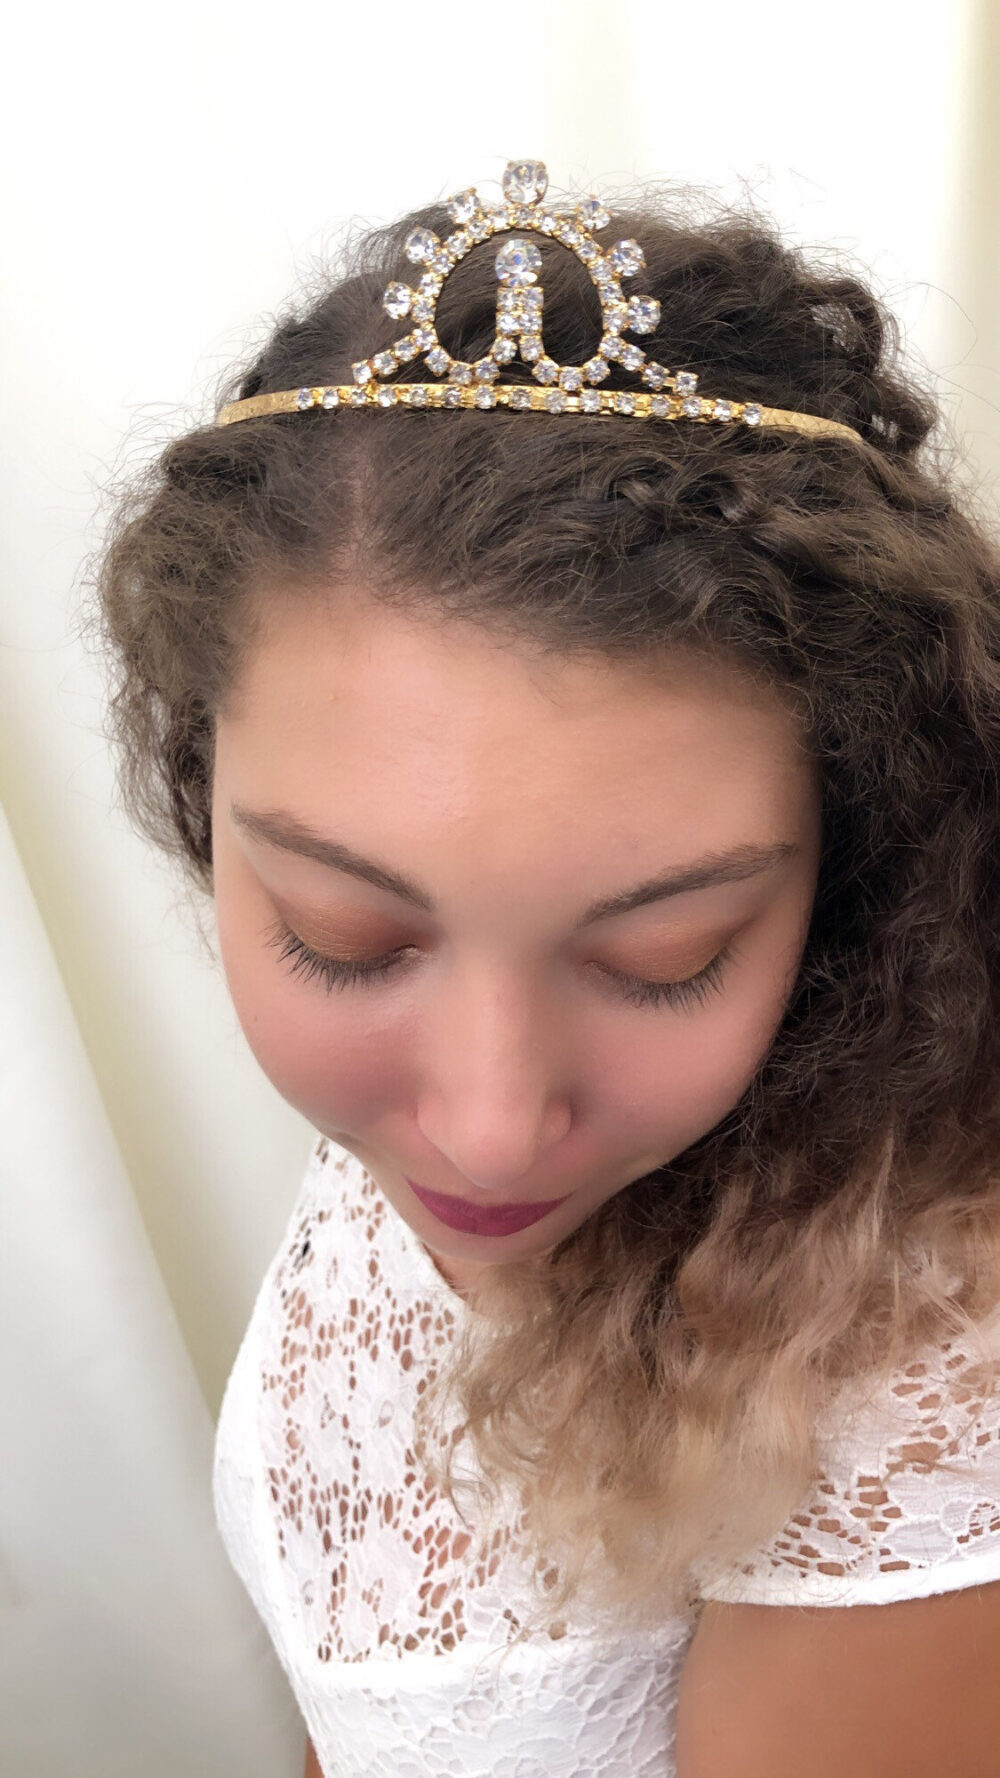 Vintage Rhinestone Tiara, Gold Or Silver Sunset Stunning Detailing Wedding Prom Sweet 16 Quinceanera Princess Or Queen Costume